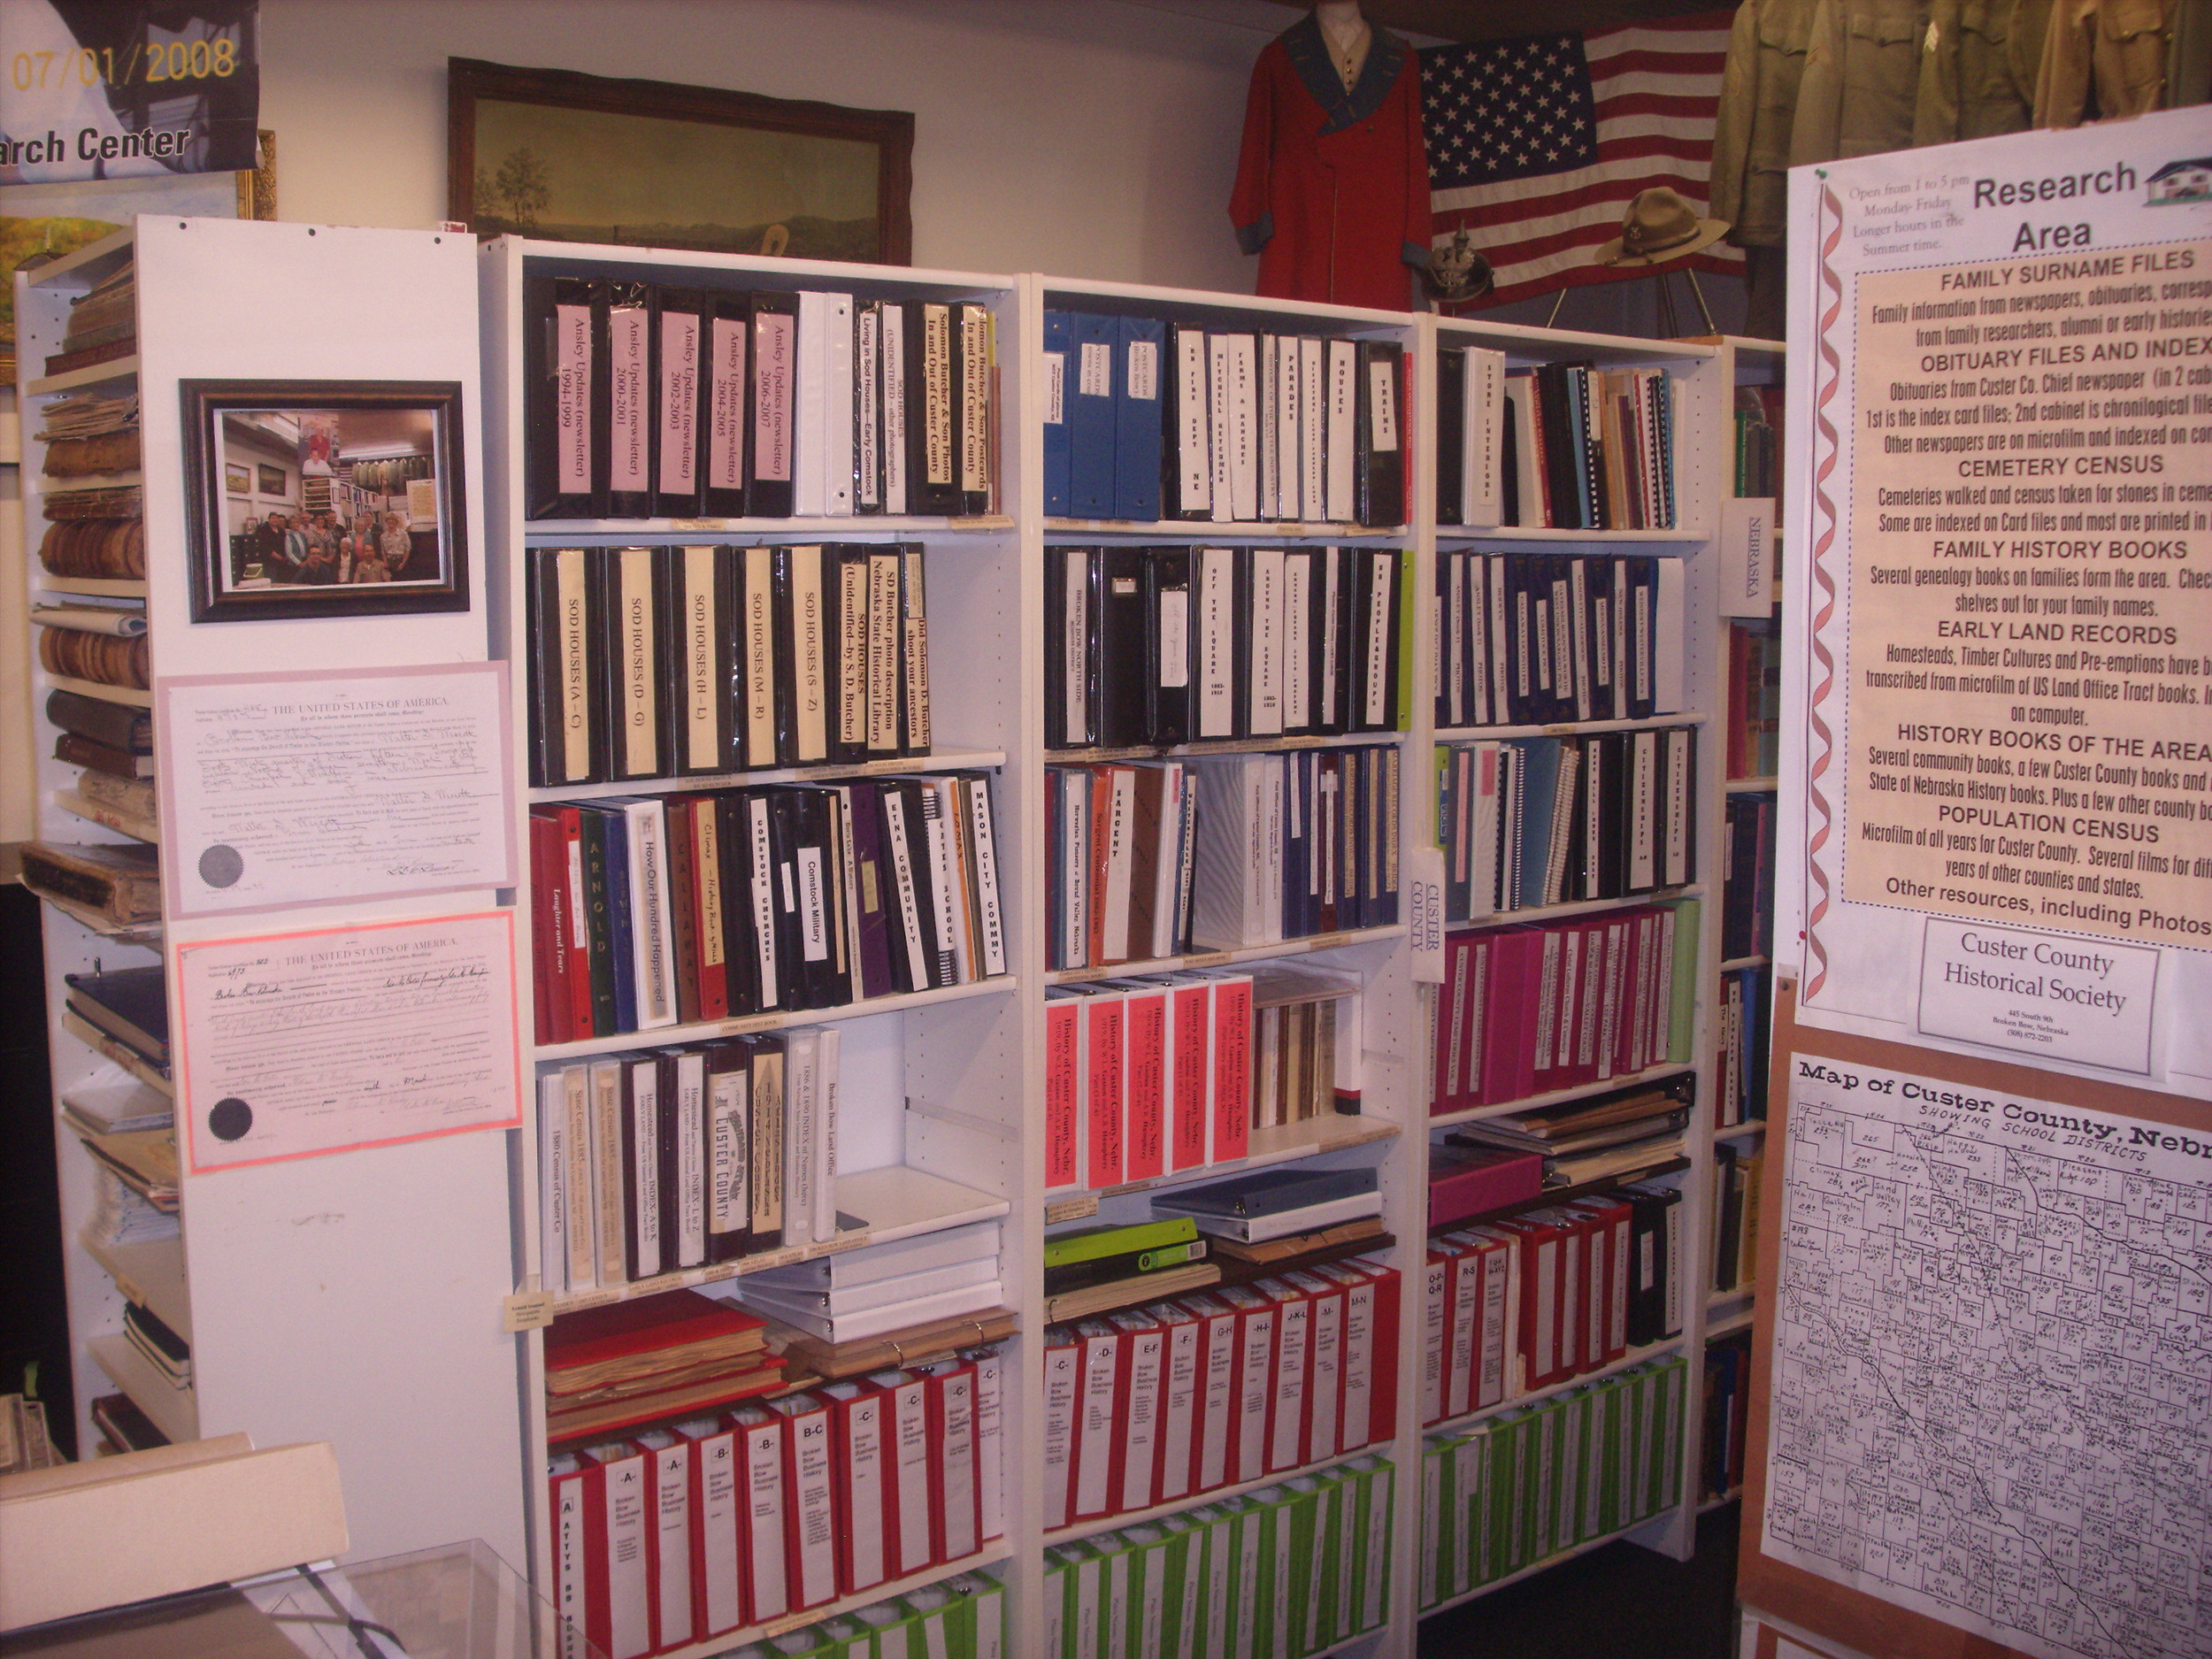 Custer County Museum Research Center